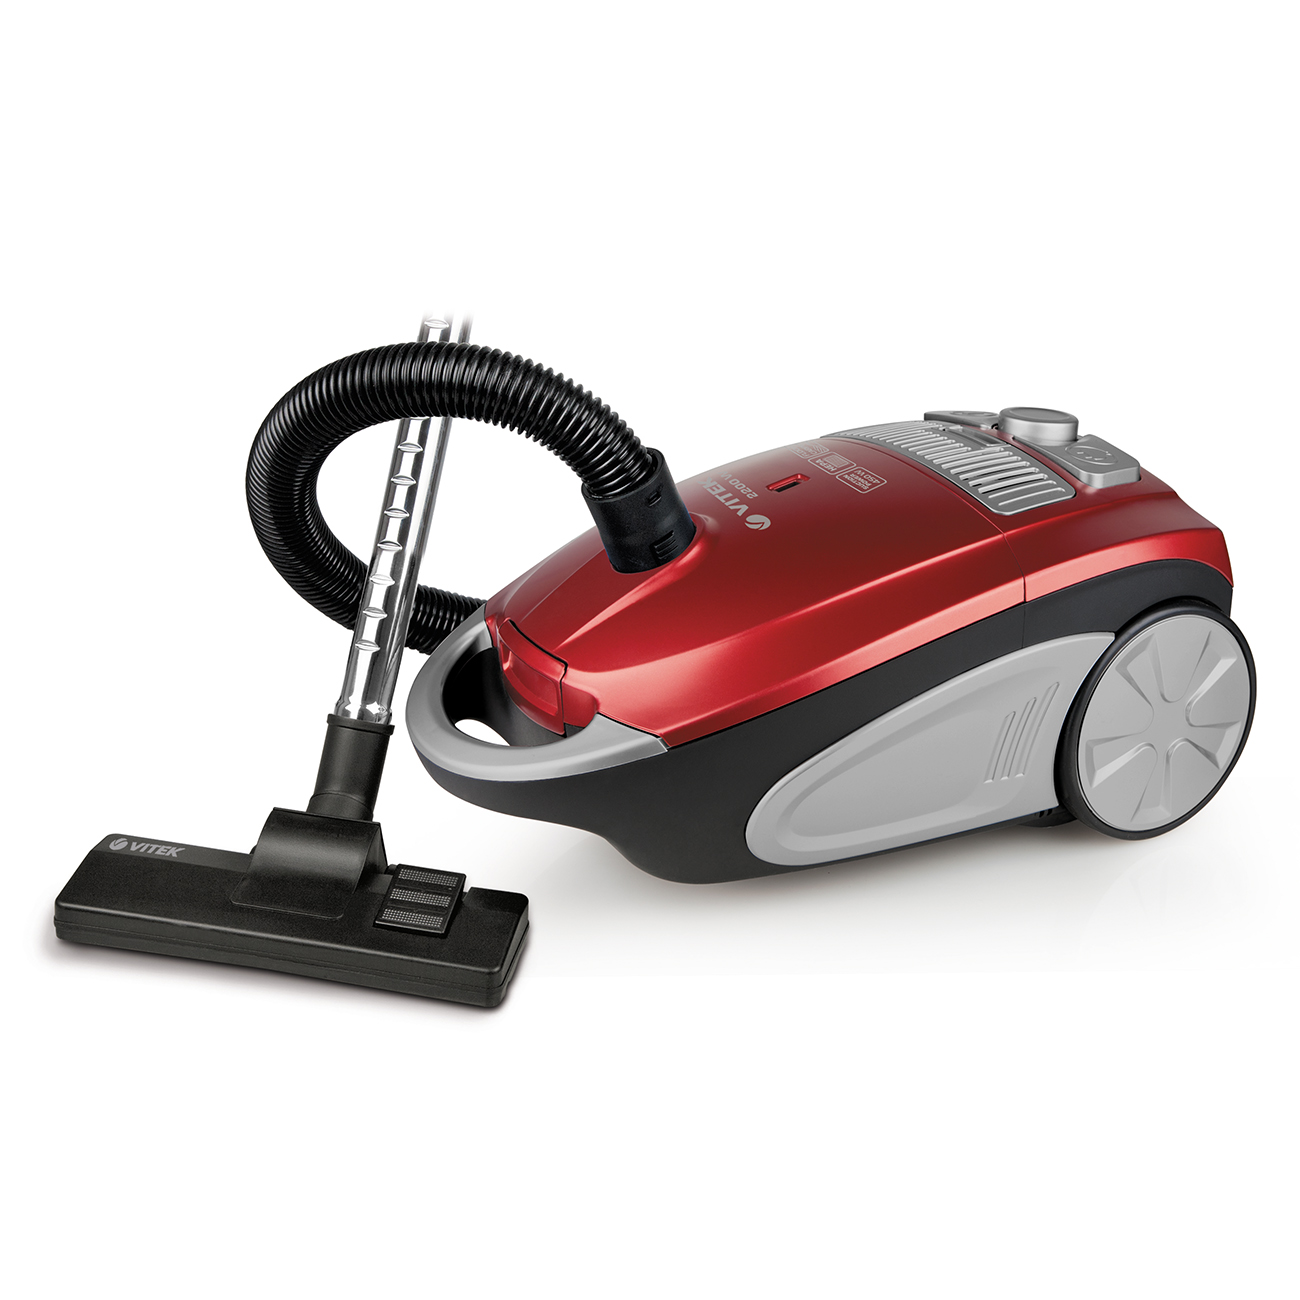 Electric vacuum cleaner Vitek VT-1892 R